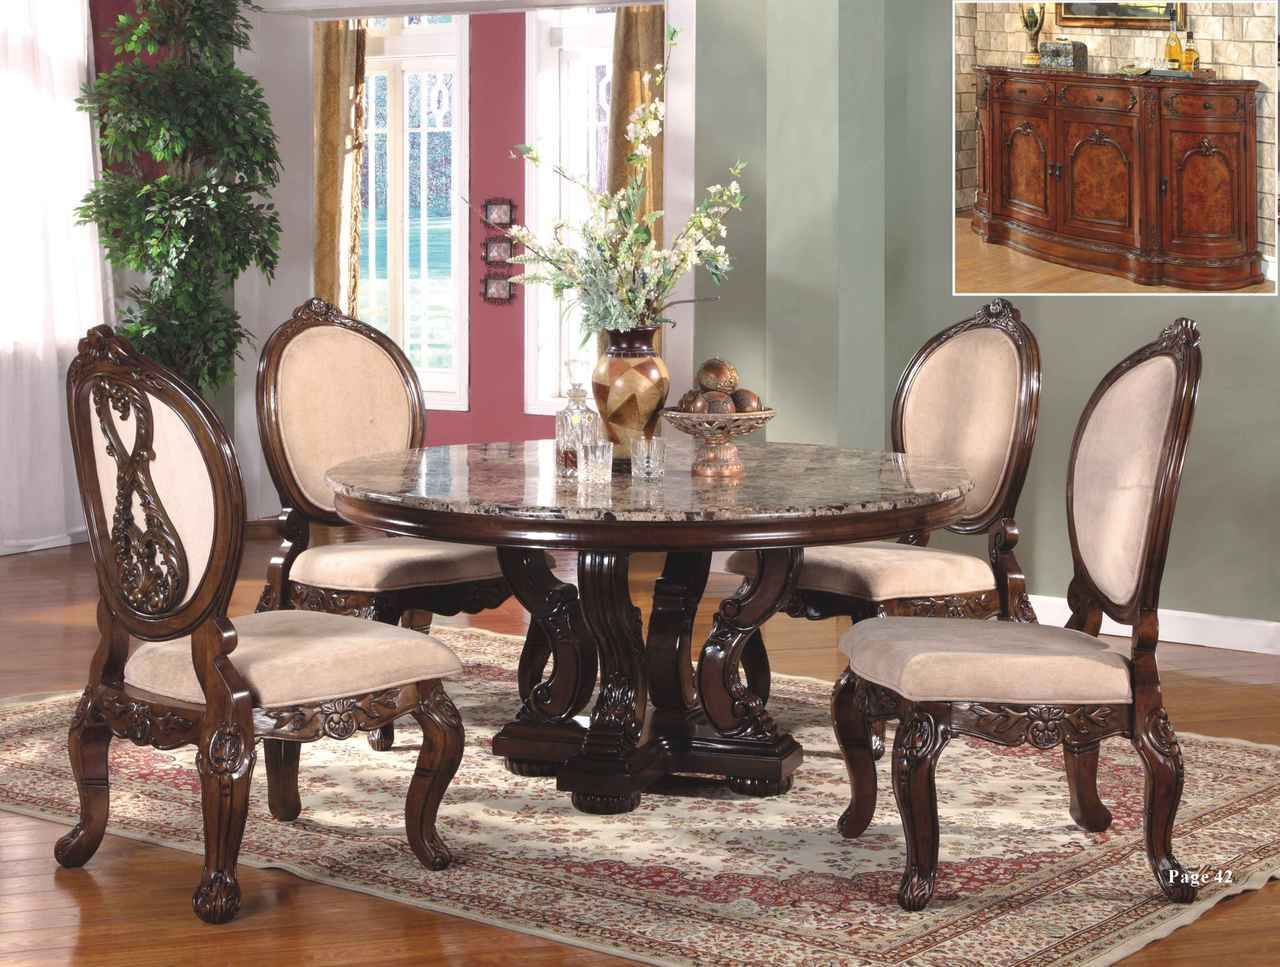 60 Round Dining Table Set Abbyville 60 Round Marble Cherry Dining Table Set Cherries